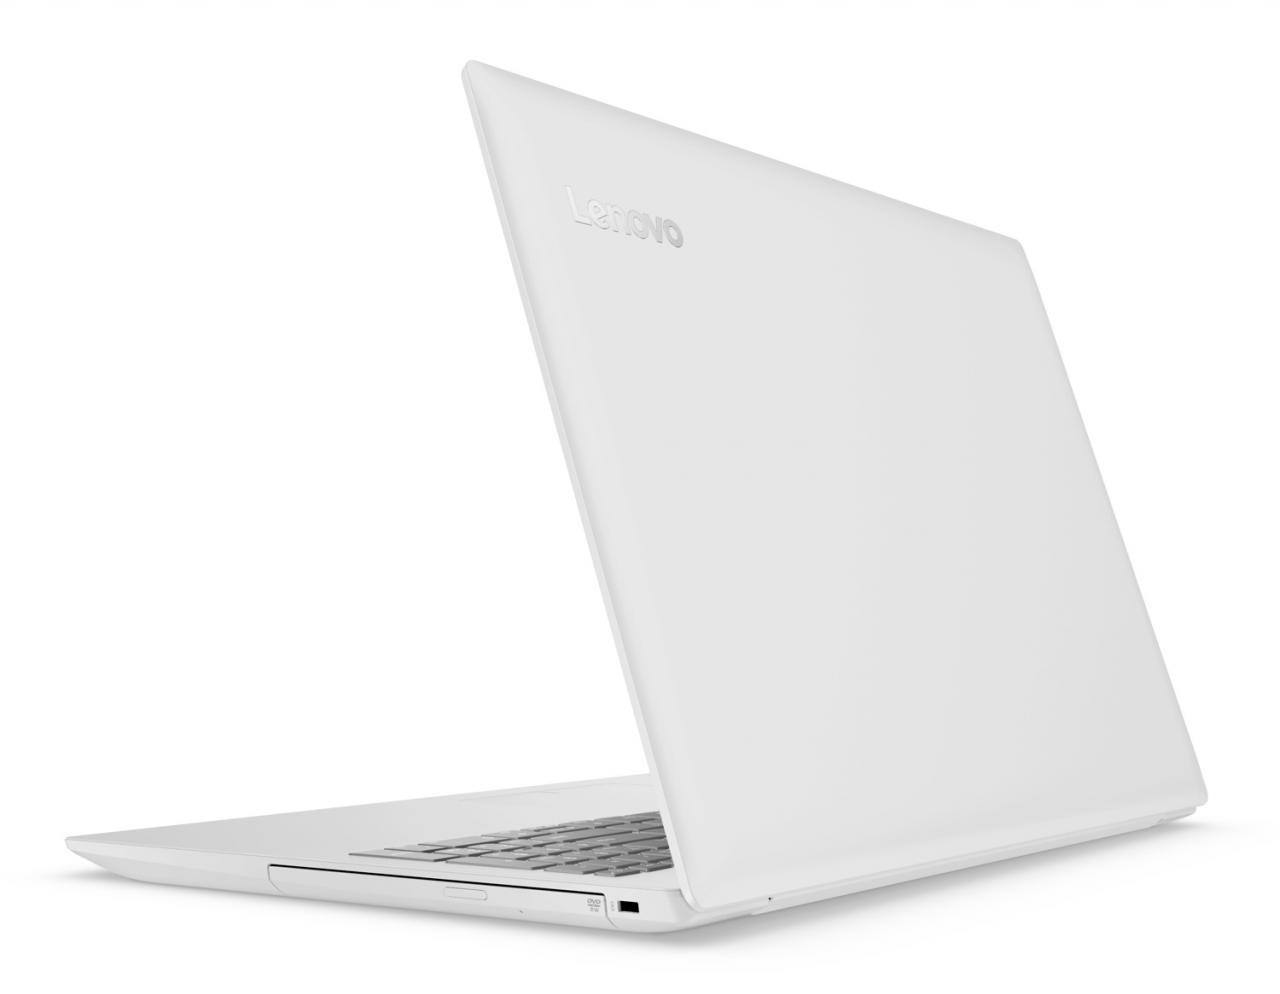 Lenovo IdeaPad 320-15IKBN Specs and Details